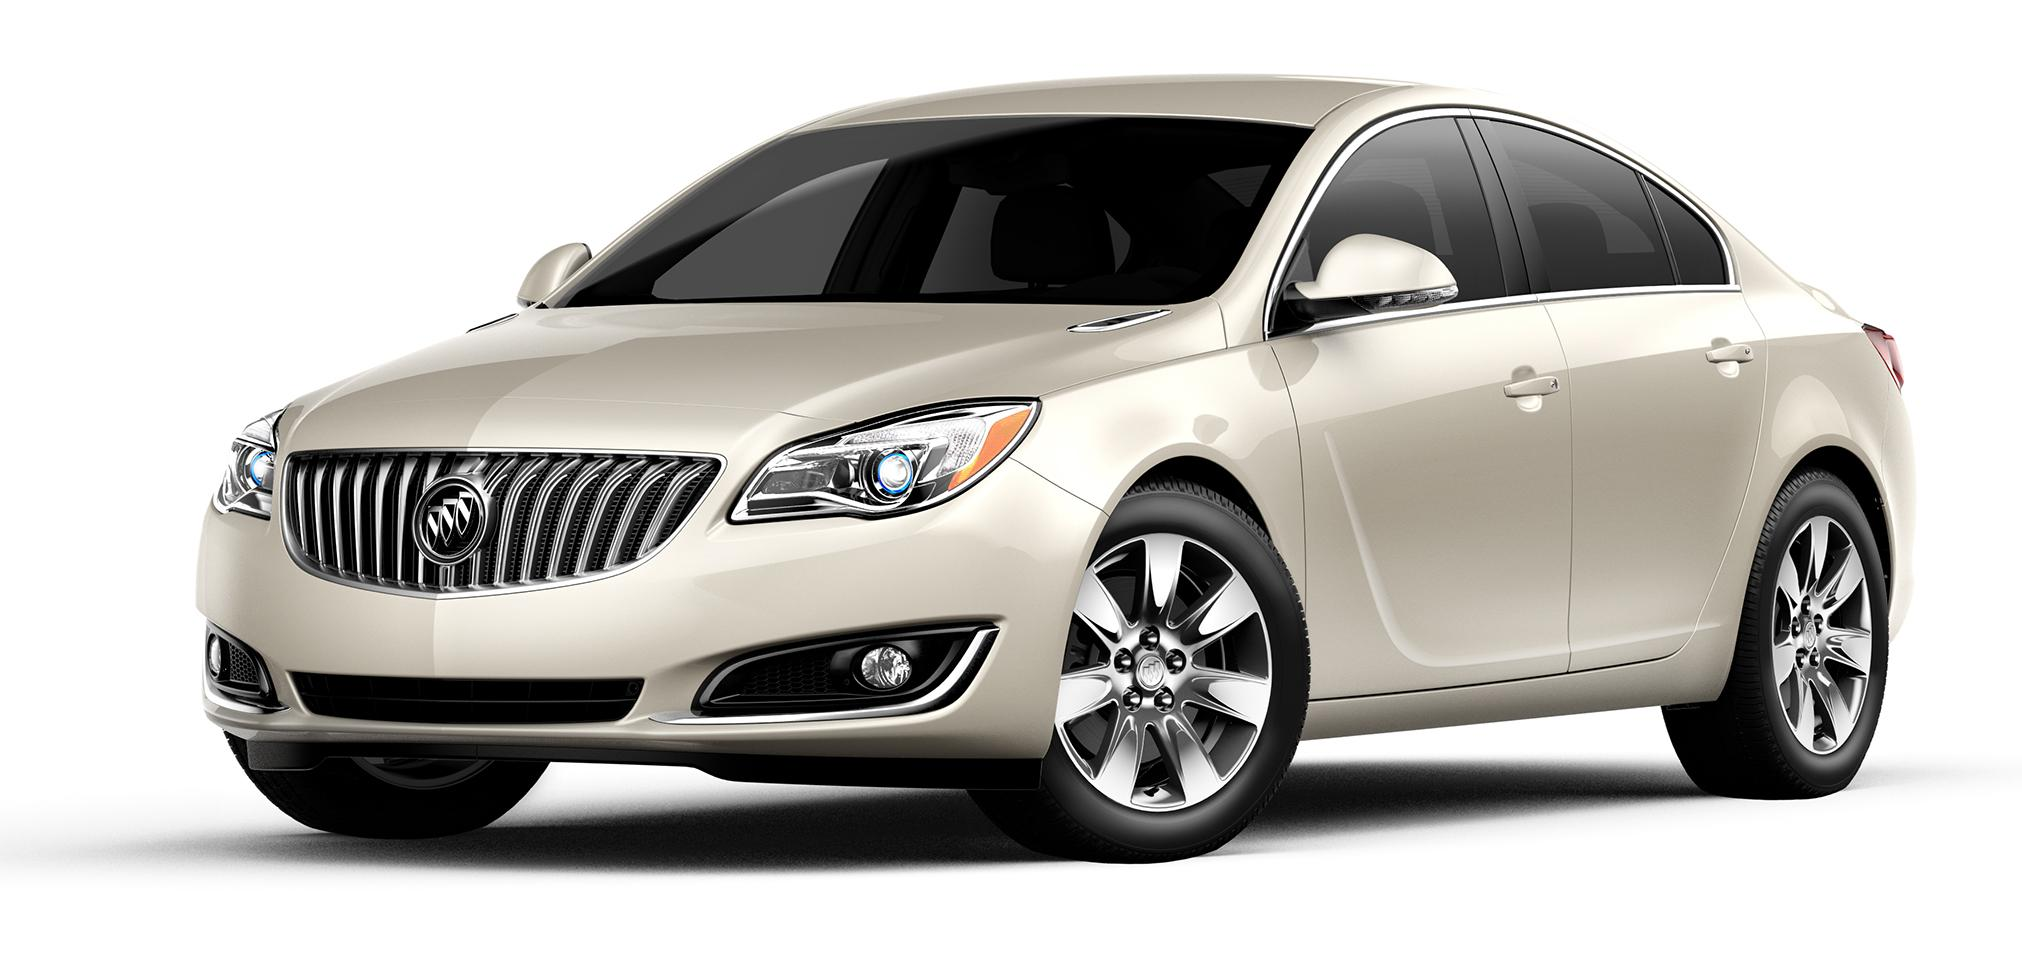 2017 Buick Regal Sparkling Silver